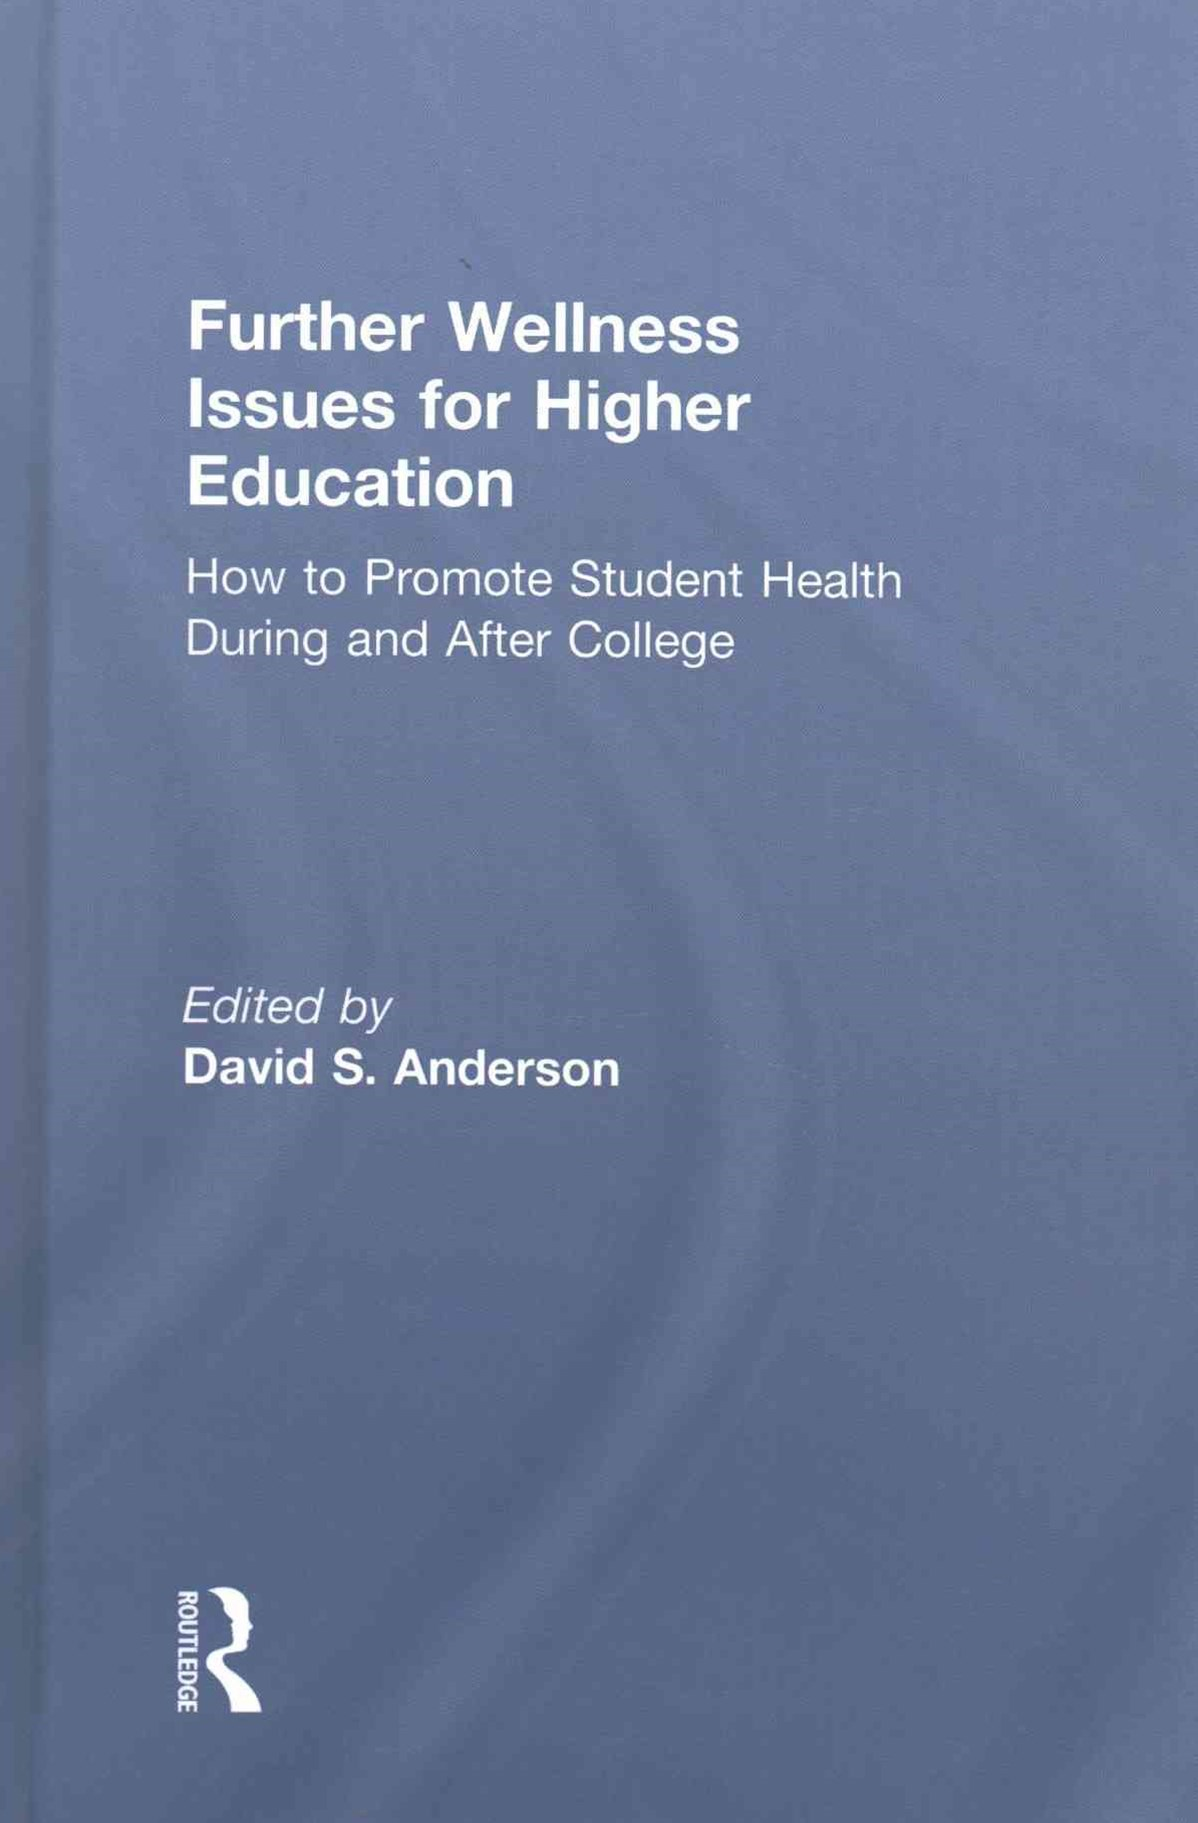 Further Wellness Issues for Higher Education